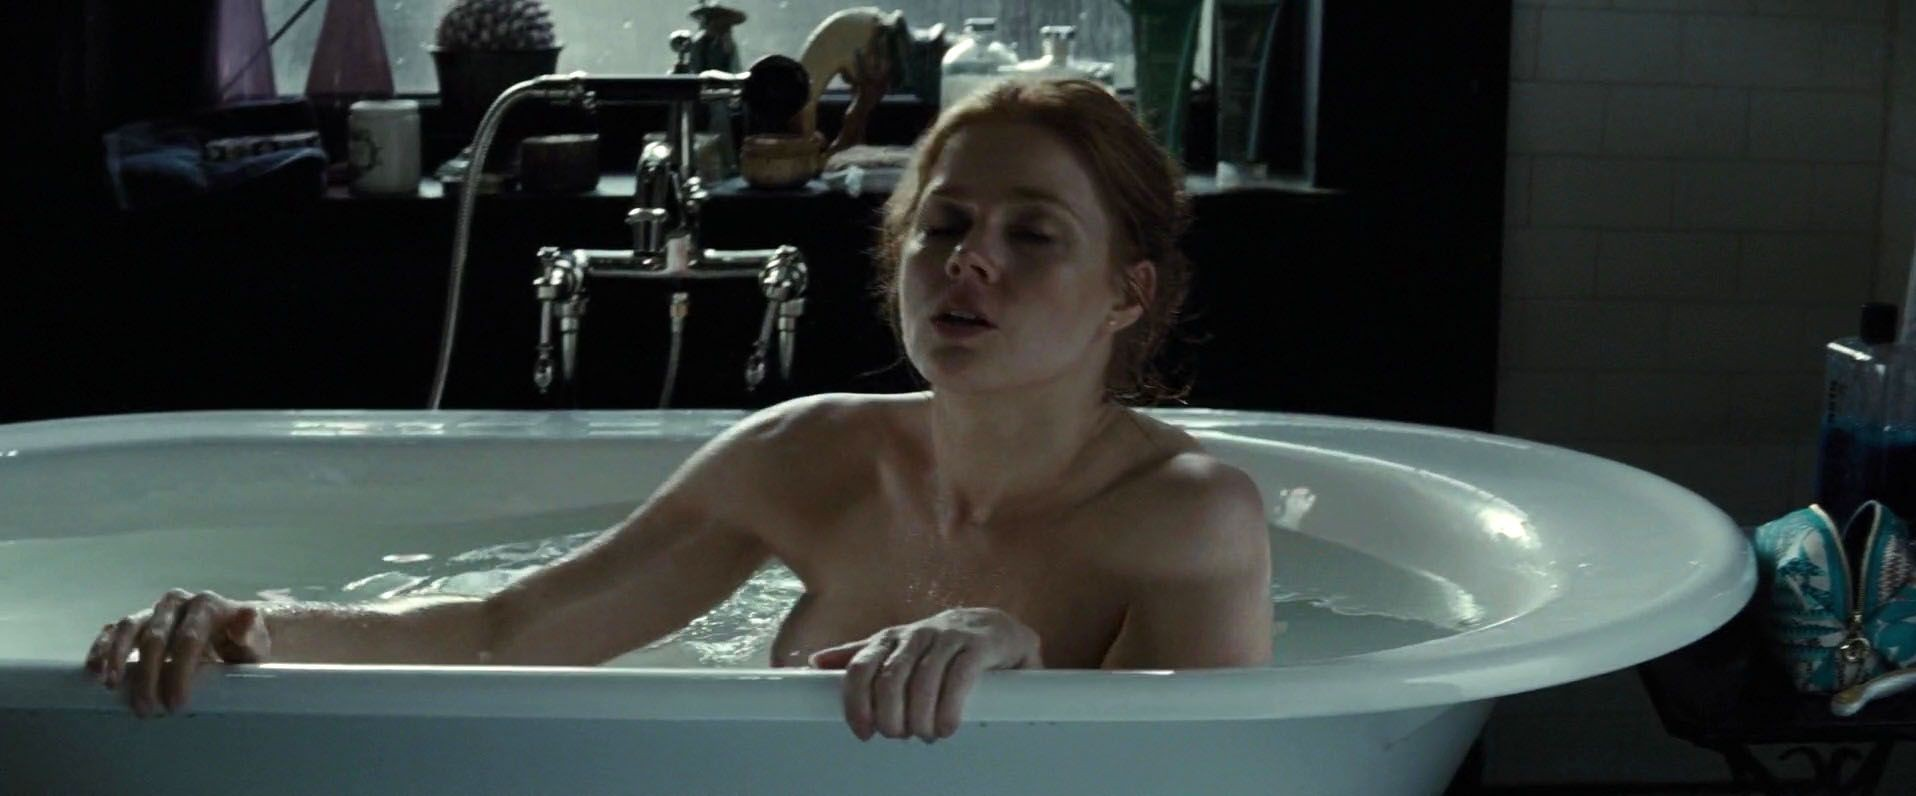 Amy Adams Desnuda amy adams nude, naked - pics and videos - imperiodefamosas